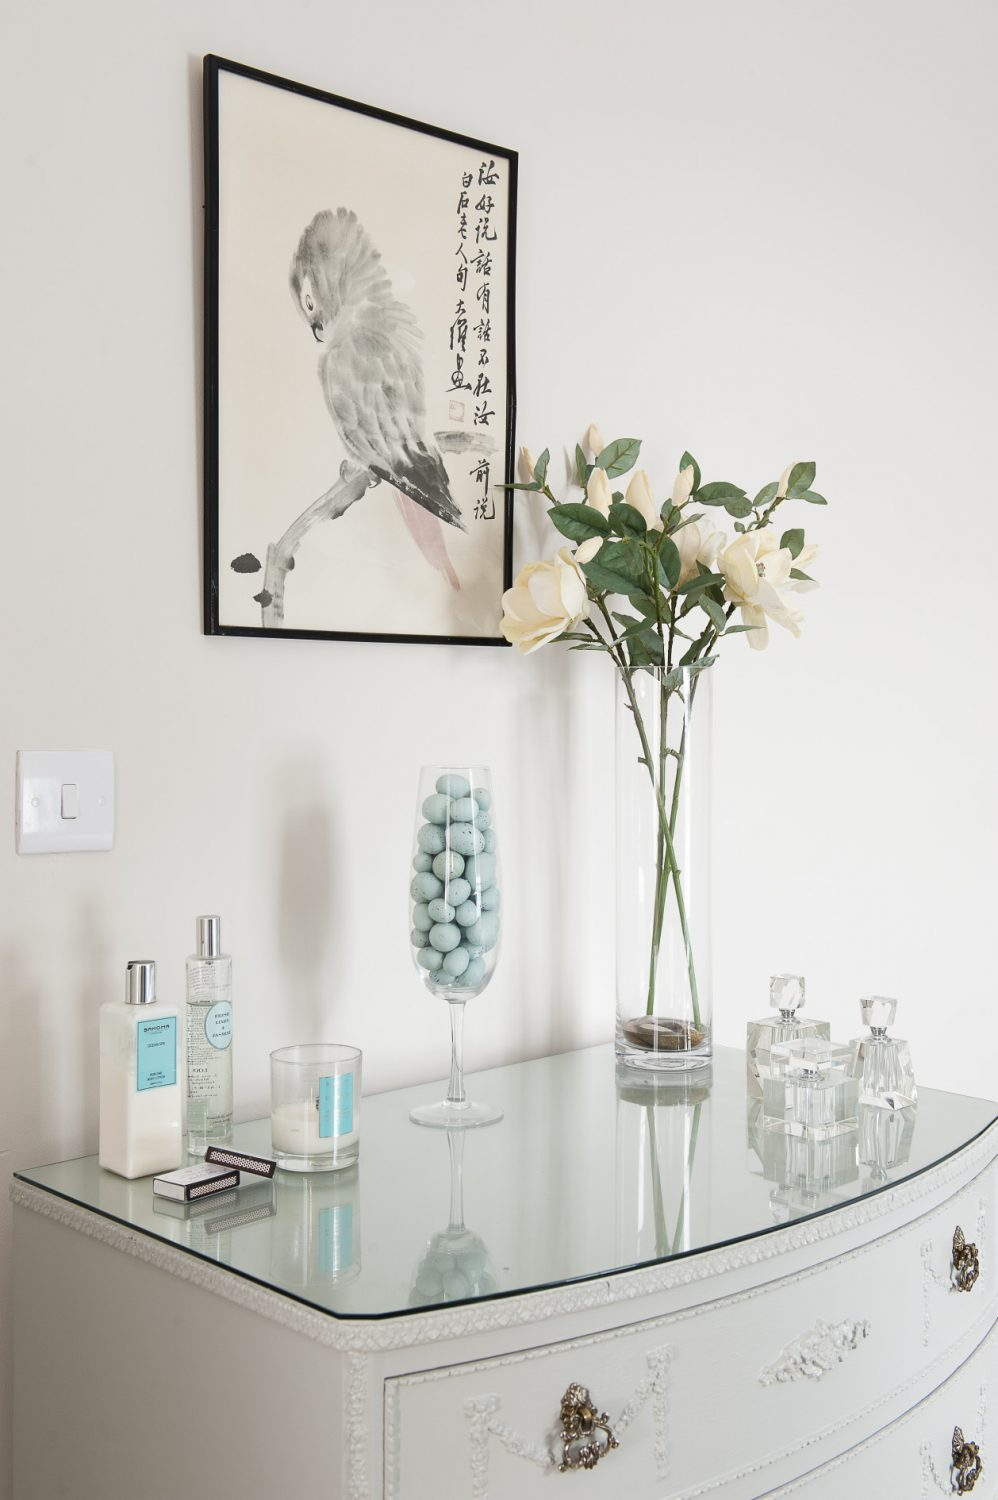 In the first guest room the walls are also painted with Skimming Stone, but here the colour looks more of a cool grey and the accents are in robin's egg blue. A chest of drawers displays a collection of Art Deco perfume bottles and a glass bonbon jar holds a clutch of speckled robin's eggs